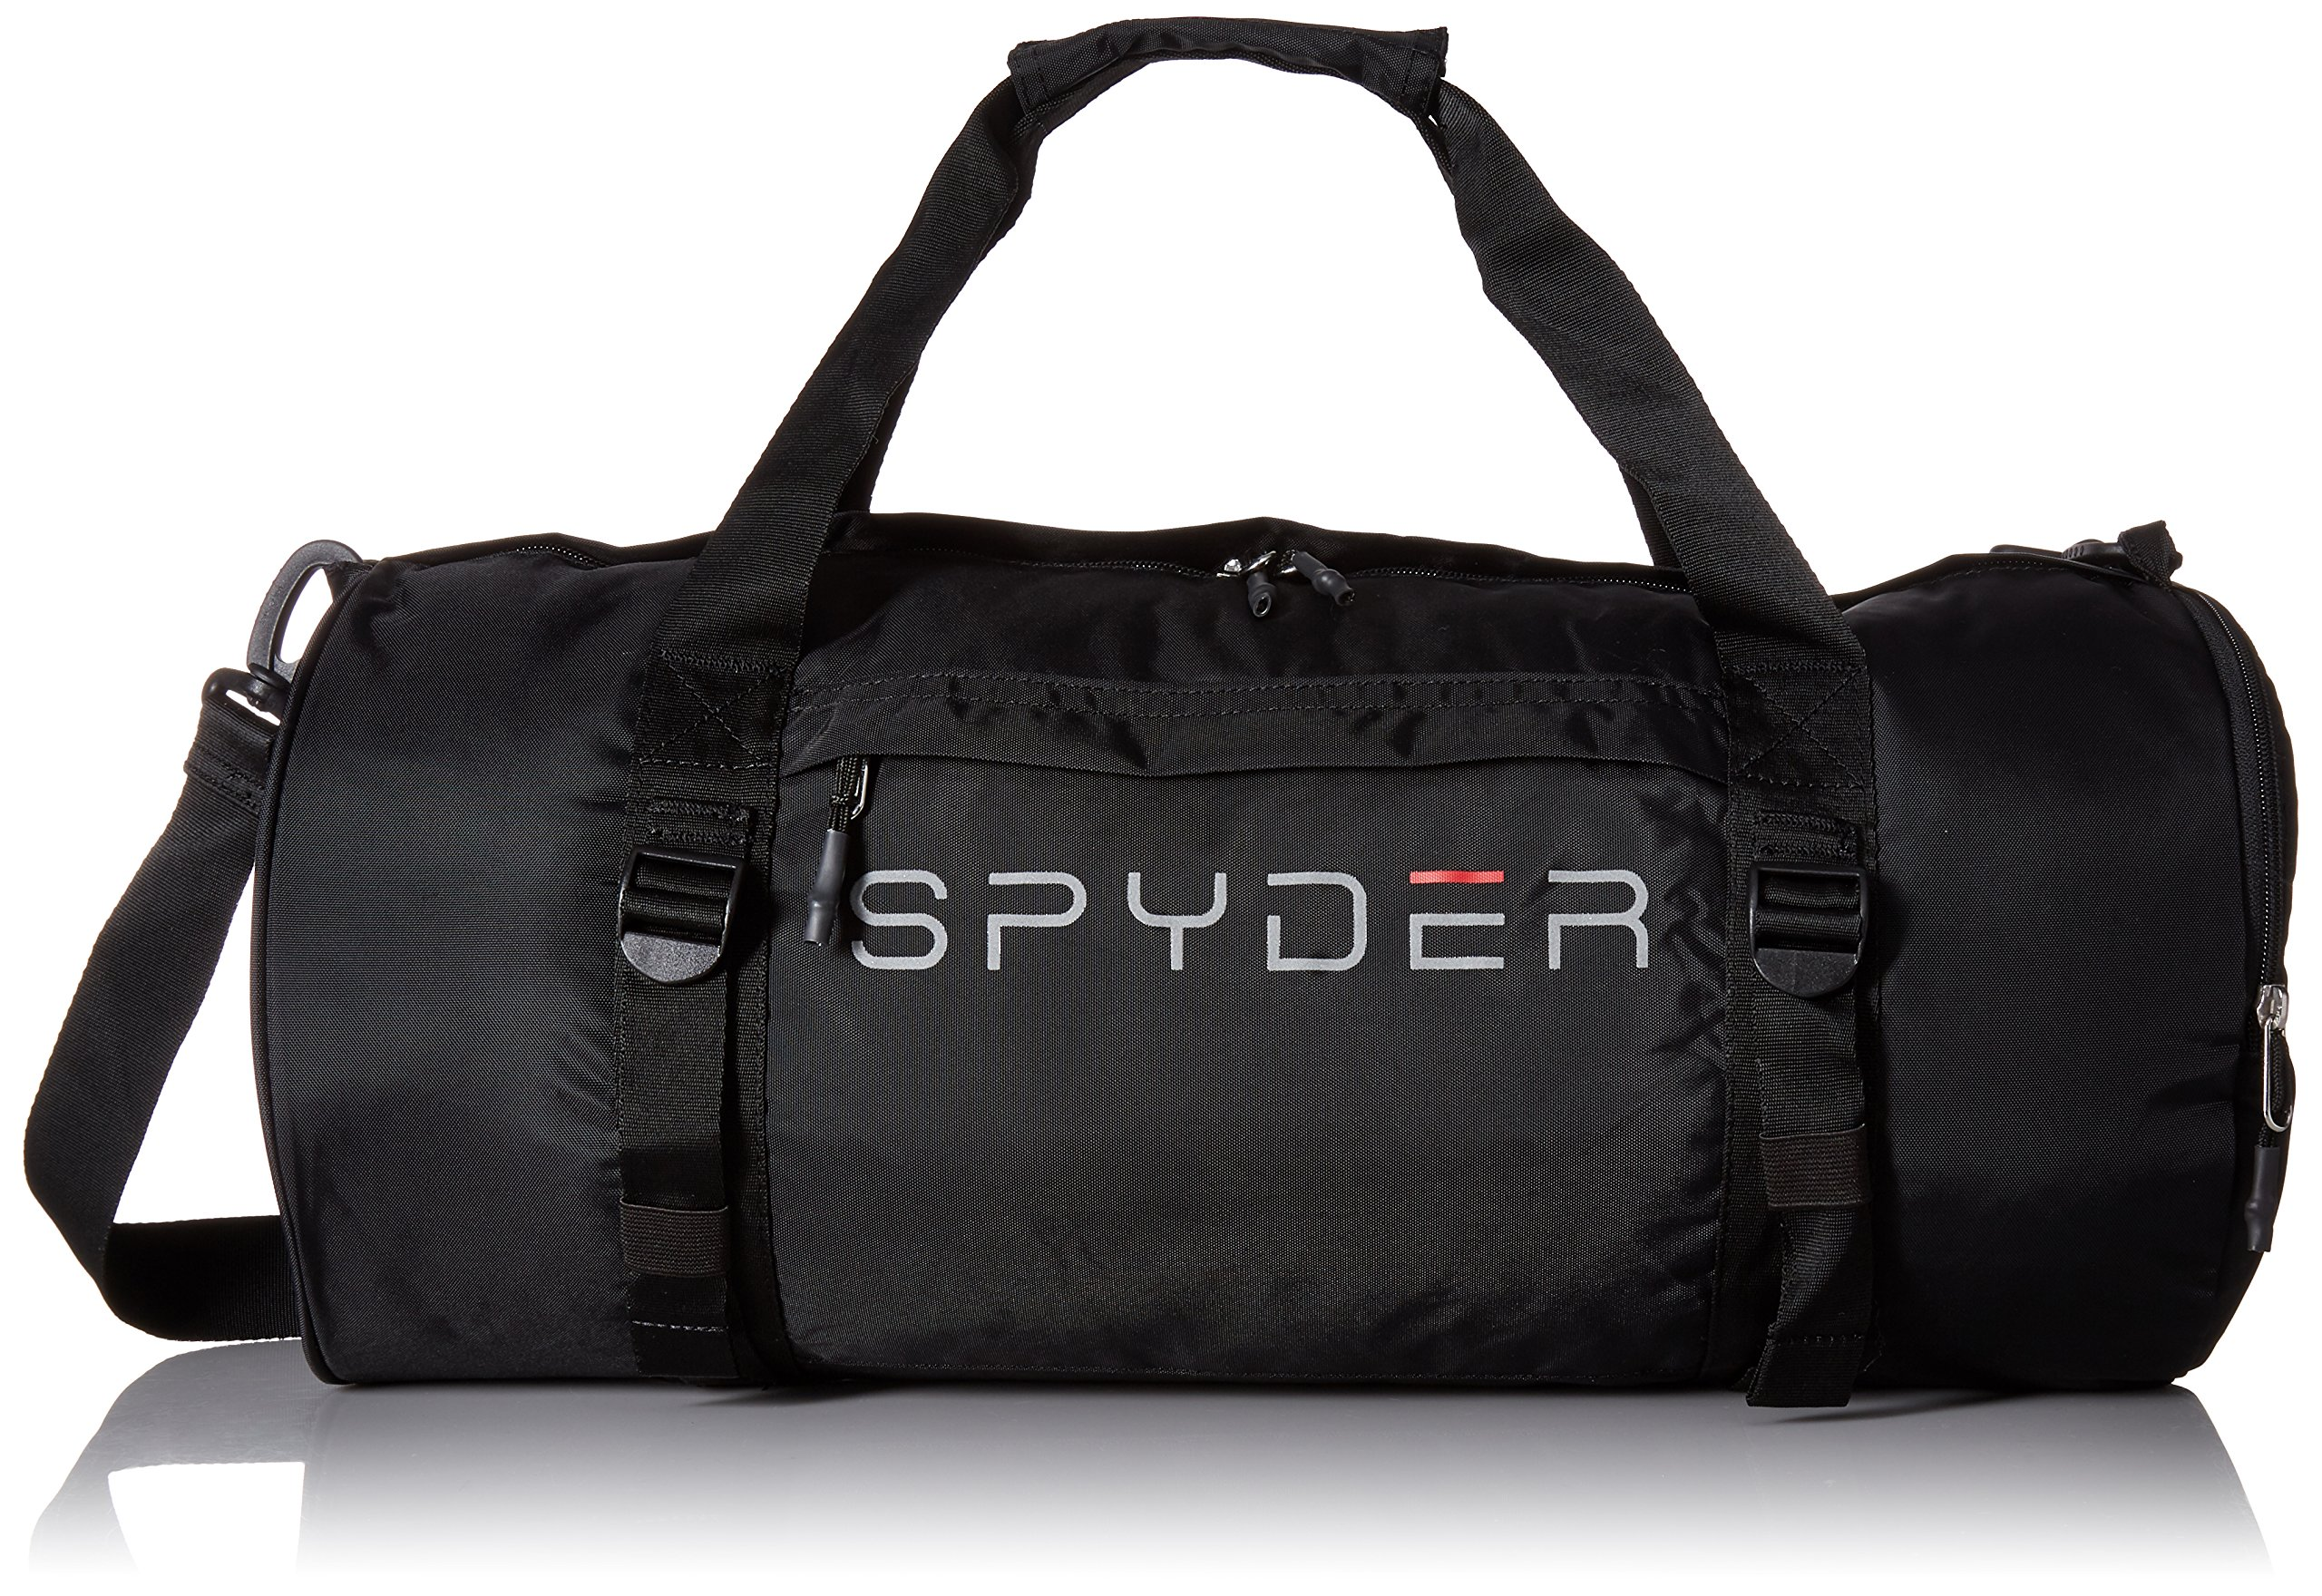 Spyder Ambition Duffel Bag, Black, One Size by Spyder